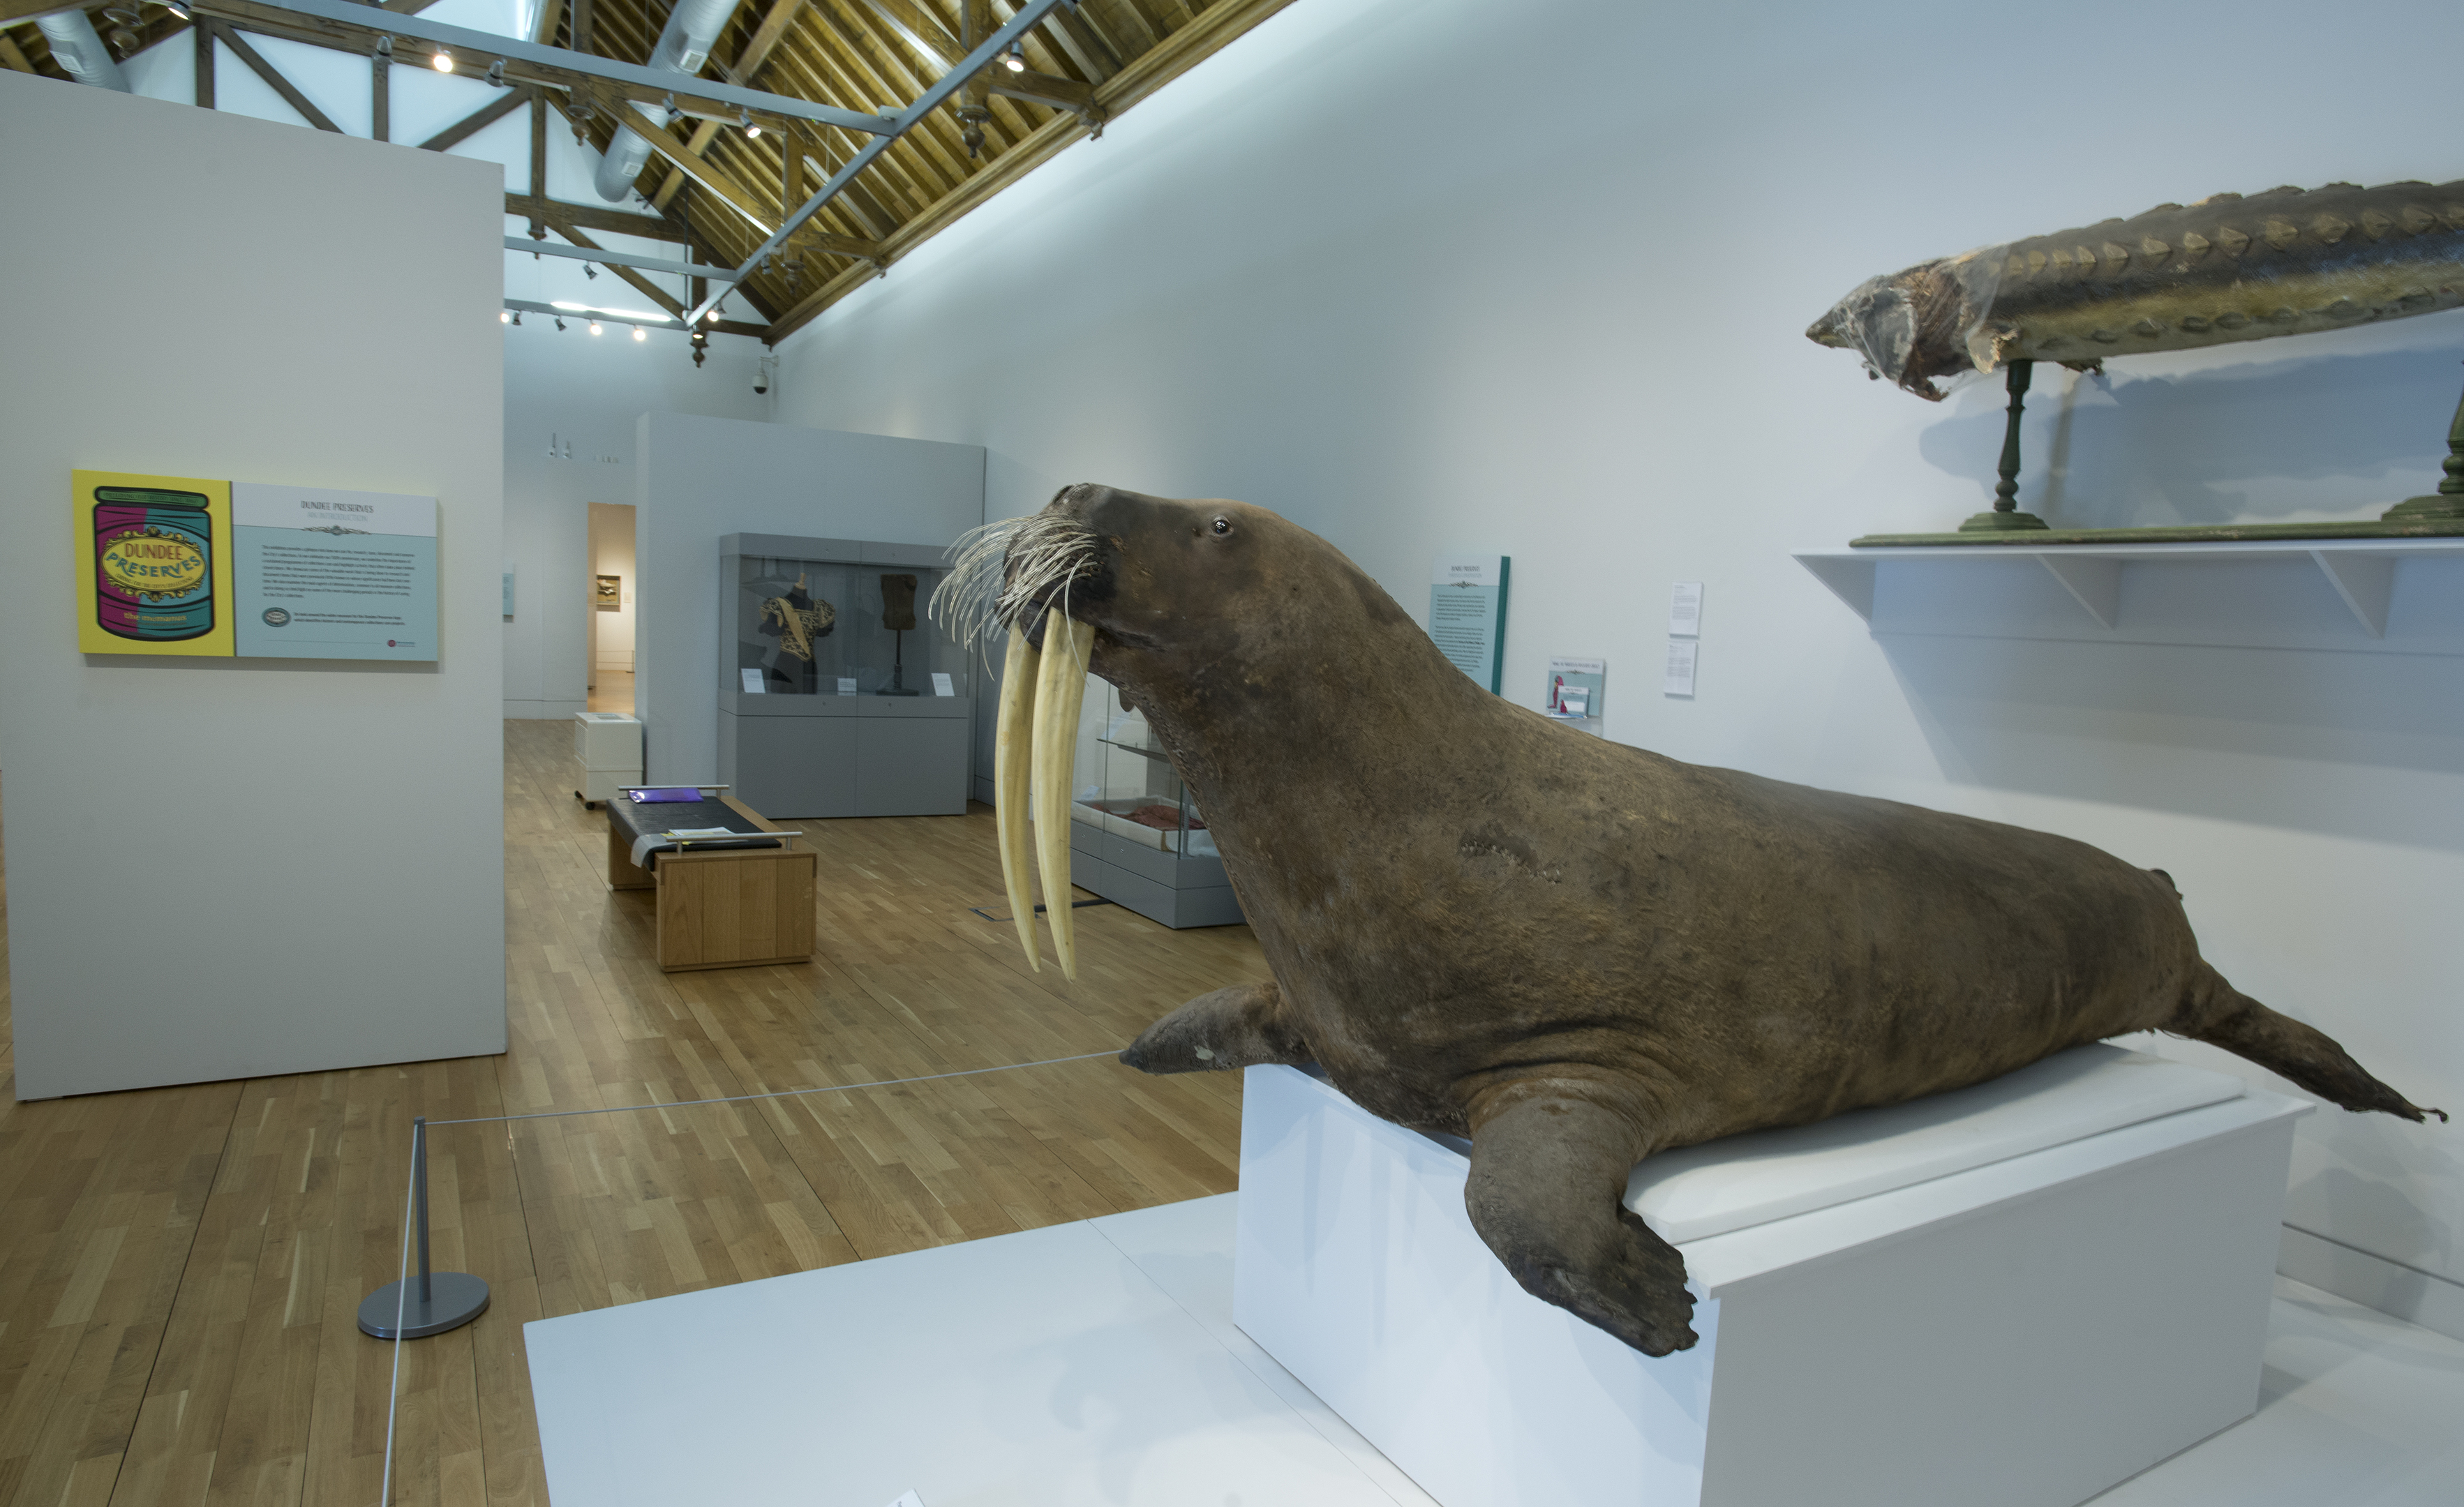 Giant Walrus named Marmalade after a public vote